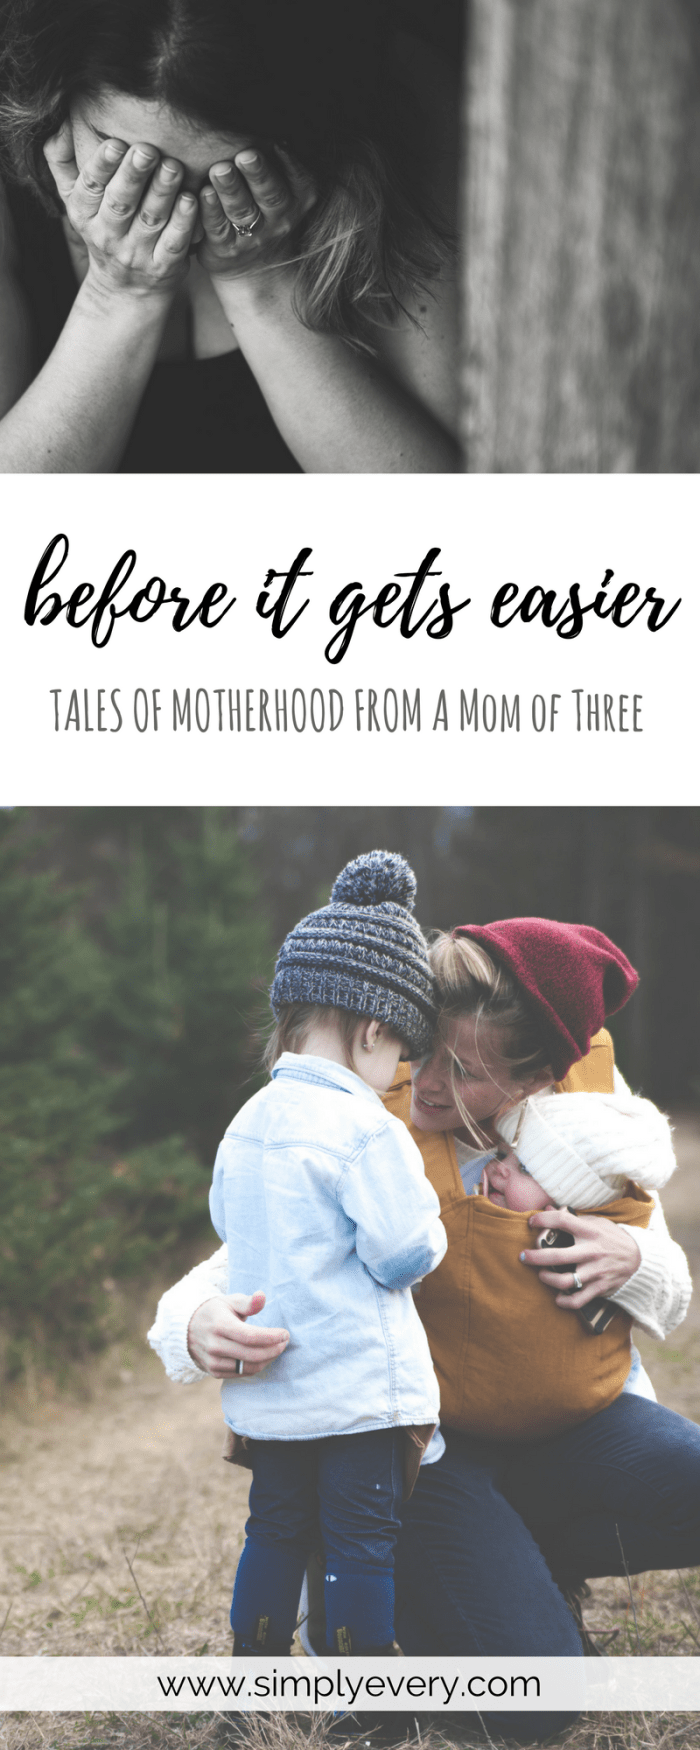 Before It Gets Easier - Tales of Motherhood from a Mom of Three